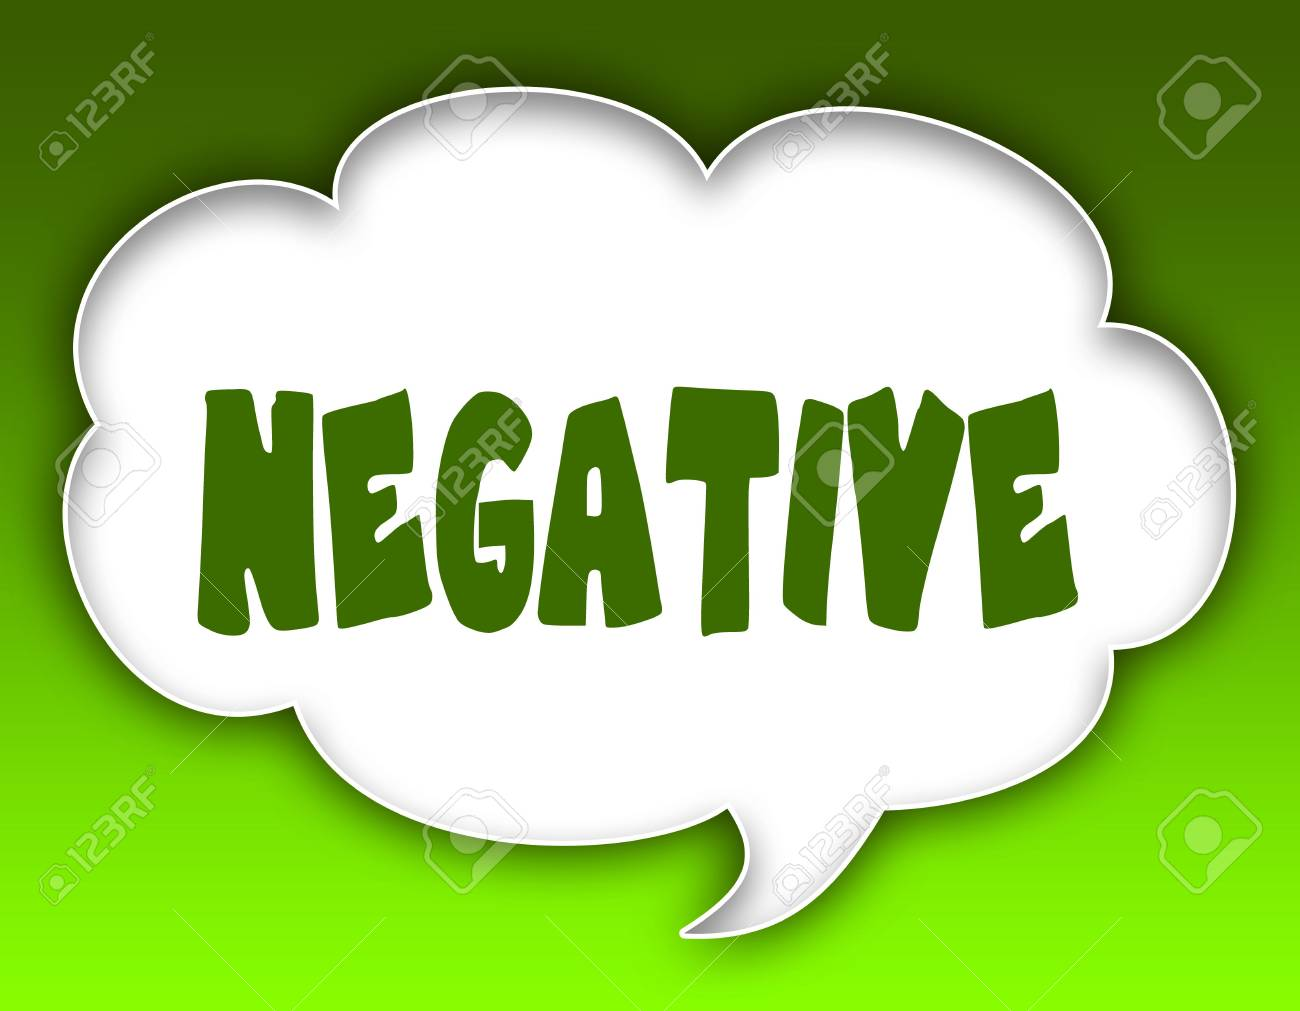 Negative message on speech cloud graphic green background illustration negative message on speech cloud graphic green background illustration thecheapjerseys Images